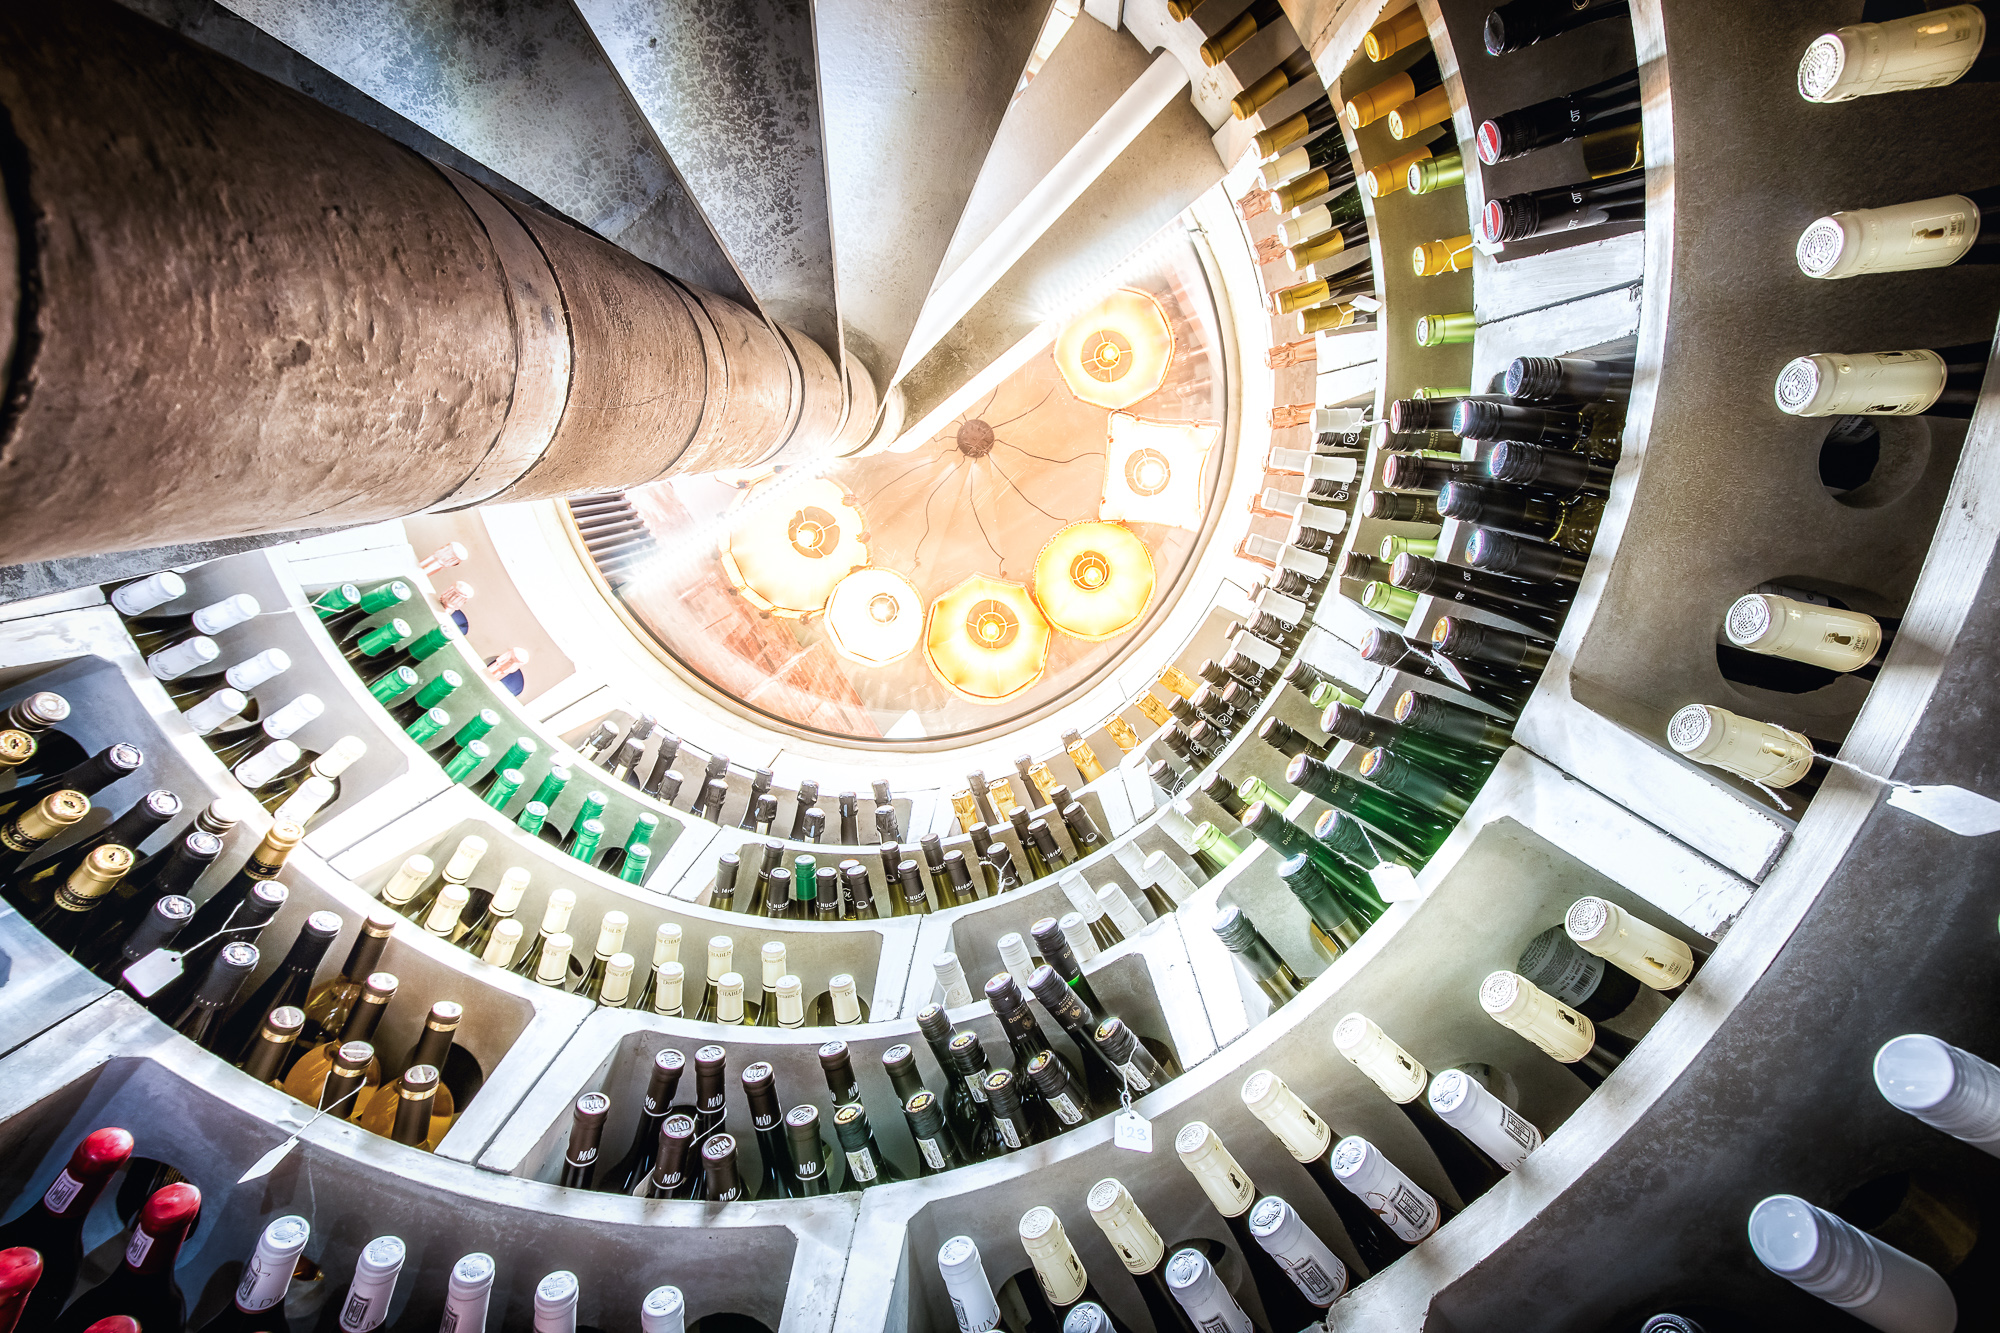 For a possible addition to the basement I have considered digging down further to insert a spiral cellar into the gin bar area of the basement which would ... & Spiral Cellars - Potential Addition to the Basement - Interior ...